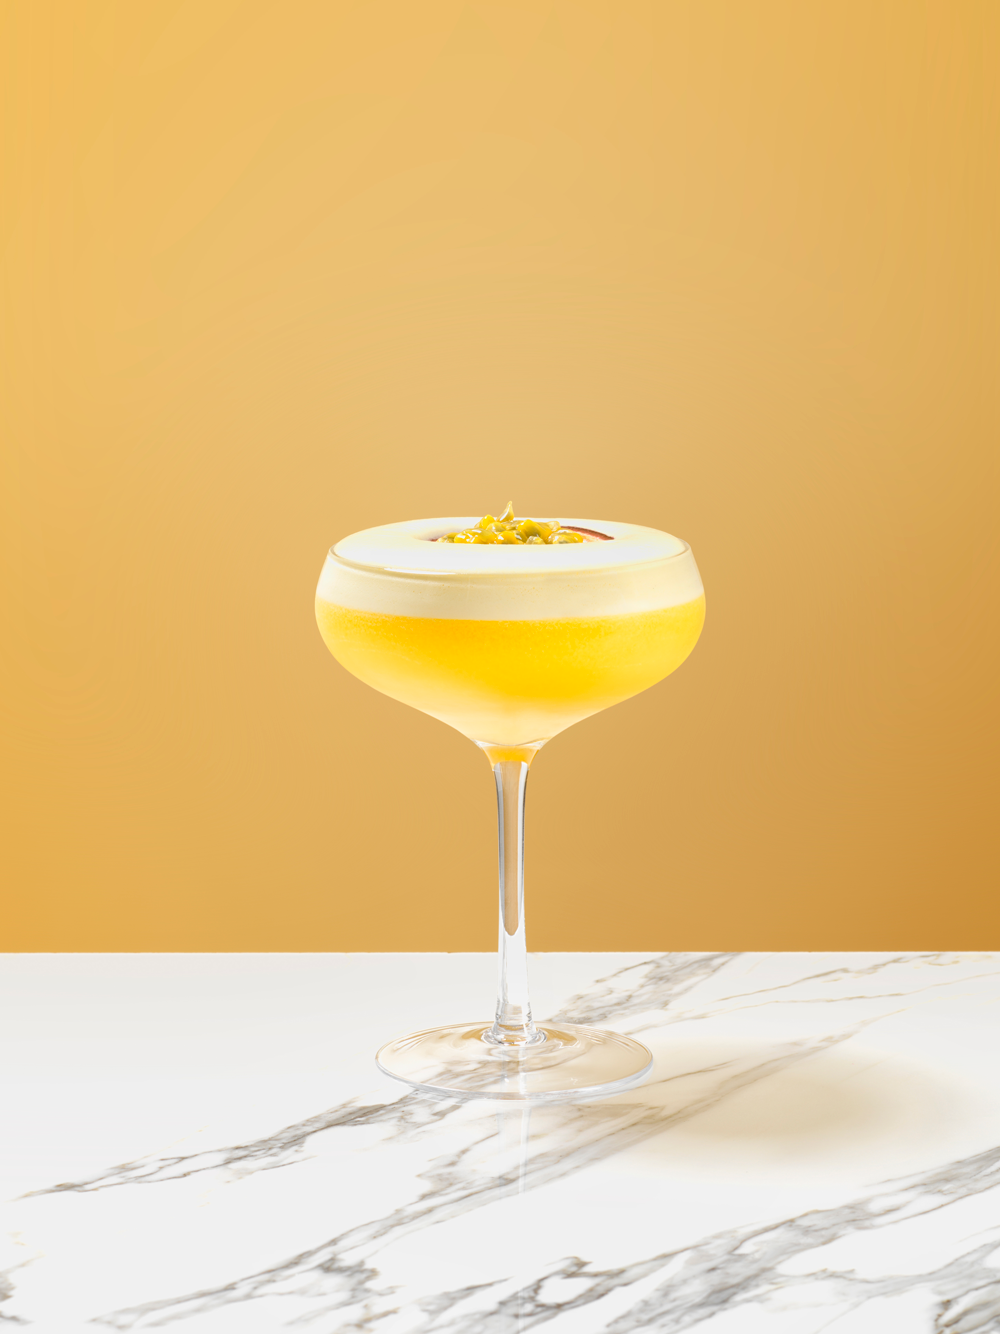 Passion Fruit Martini - AKA the Pornstar Martini. Currently the UK's leading pop cocktail.